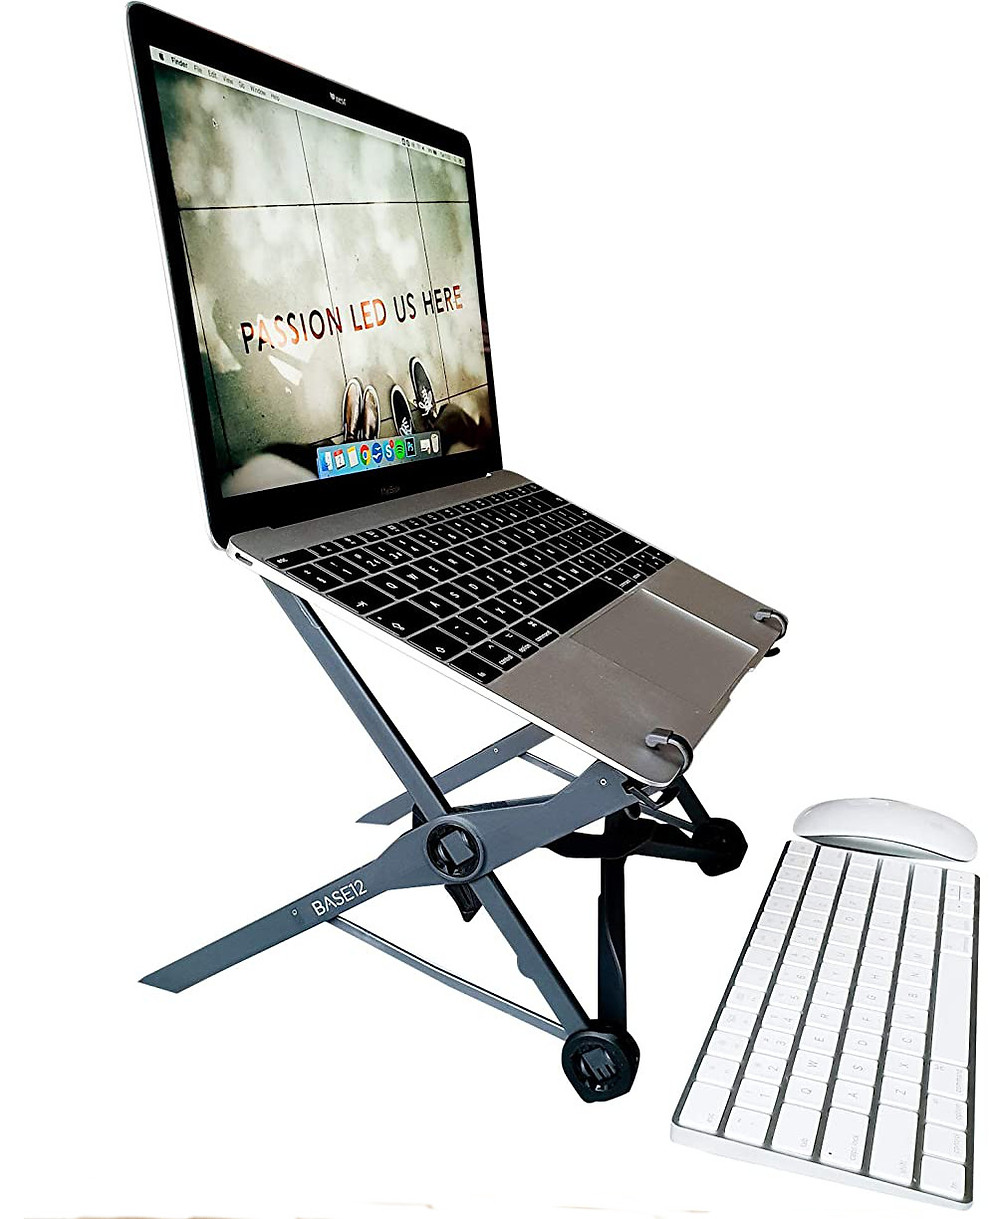 Portable, foldable laptop stand carrying a laptop with bluetooth keyboard and mouse